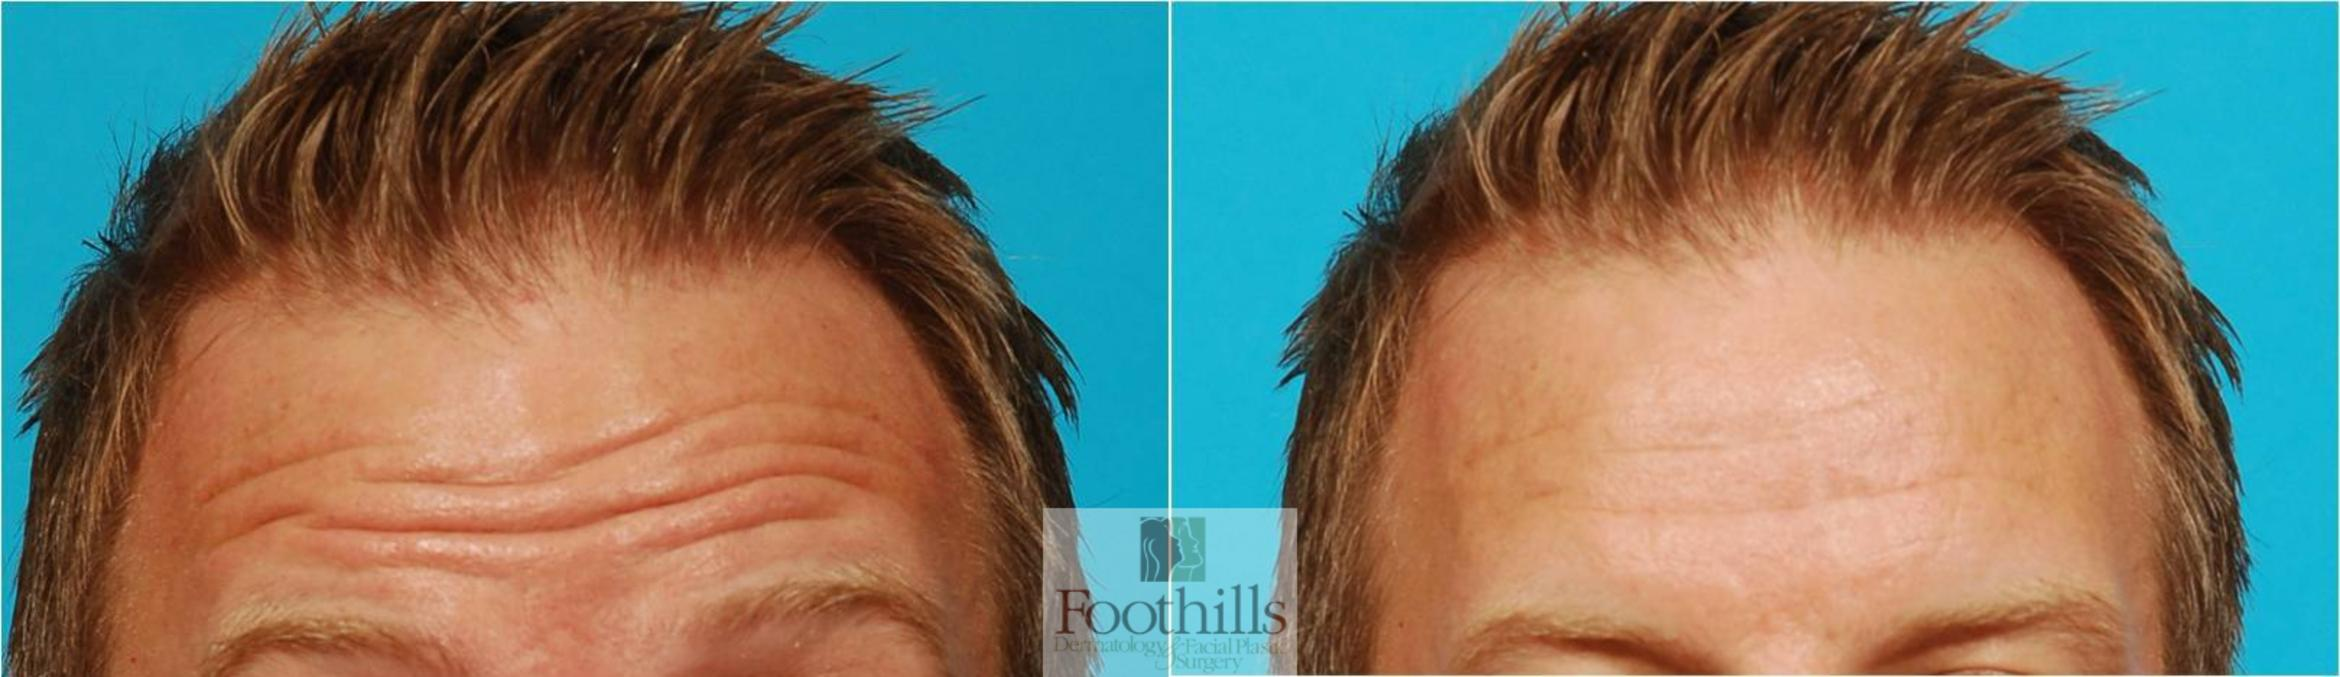 BOTOX® Cosmetic Case 60 Before & After View #1 | Tucson, Az | Foothills Dermatology & Facial Plastic Surgery